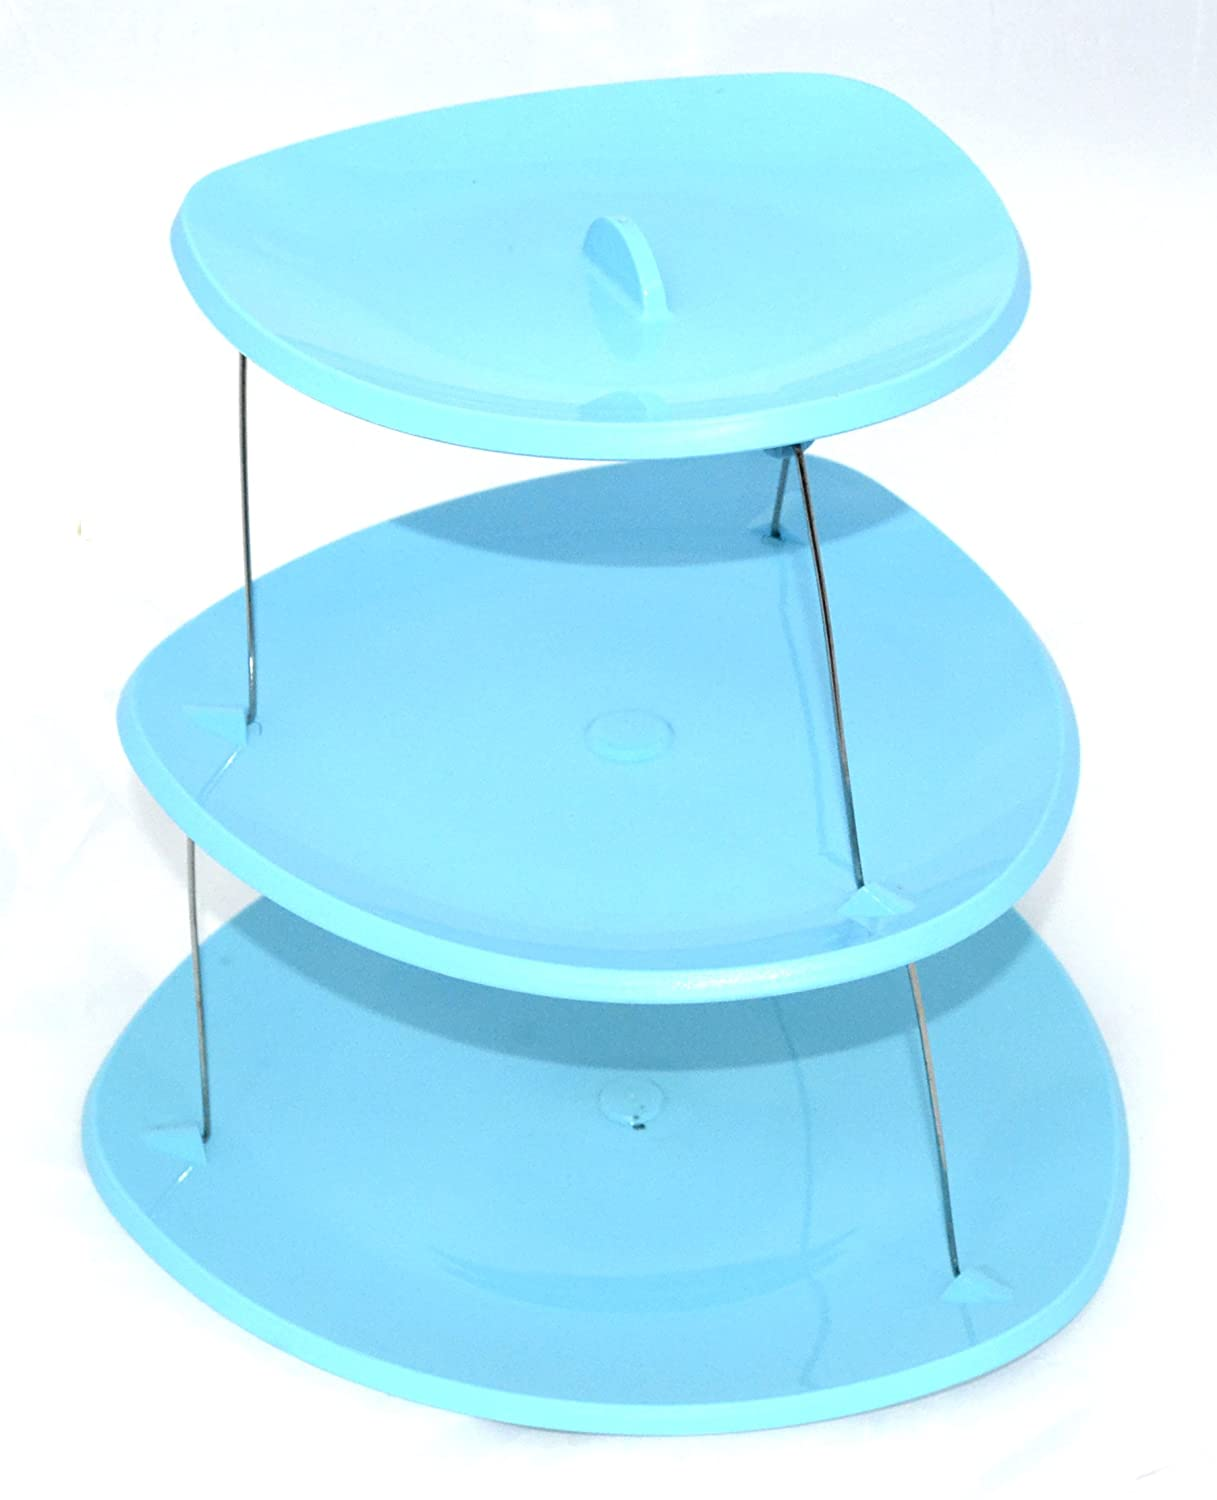 3 Tier Twistfold Flat Cake Stand/Paries,Gathering,Guests Collapsible Plates (Turquoise) S&S